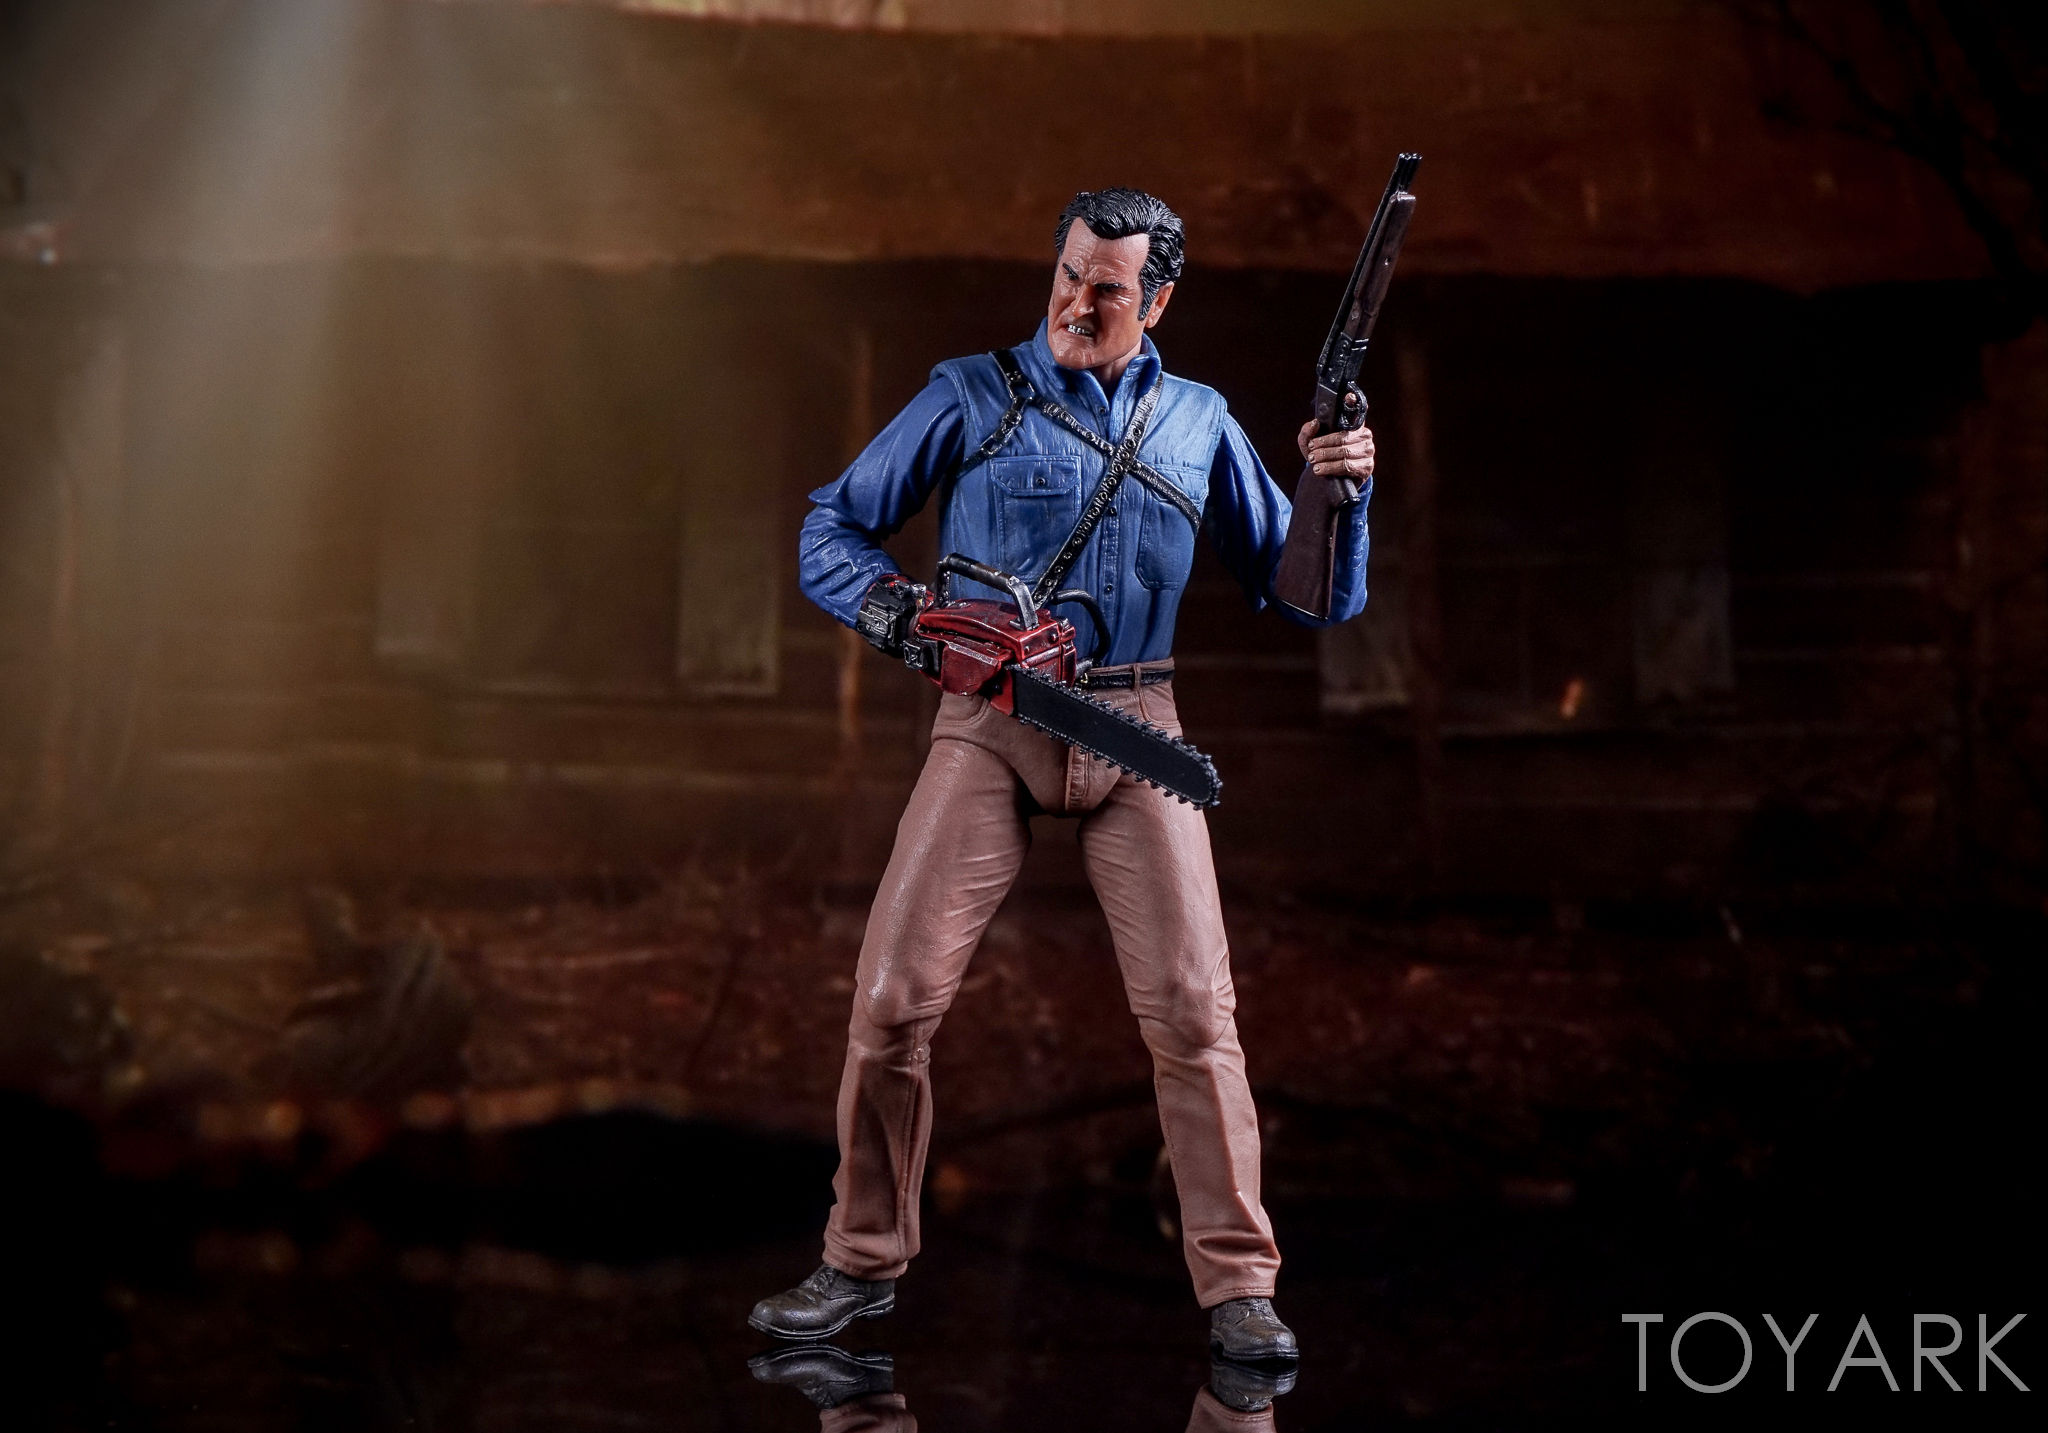 http://news.toyark.com/wp-content/uploads/sites/4/2016/09/Ash-vs-Evil-Dead-Series-1-NECA-134.jpg